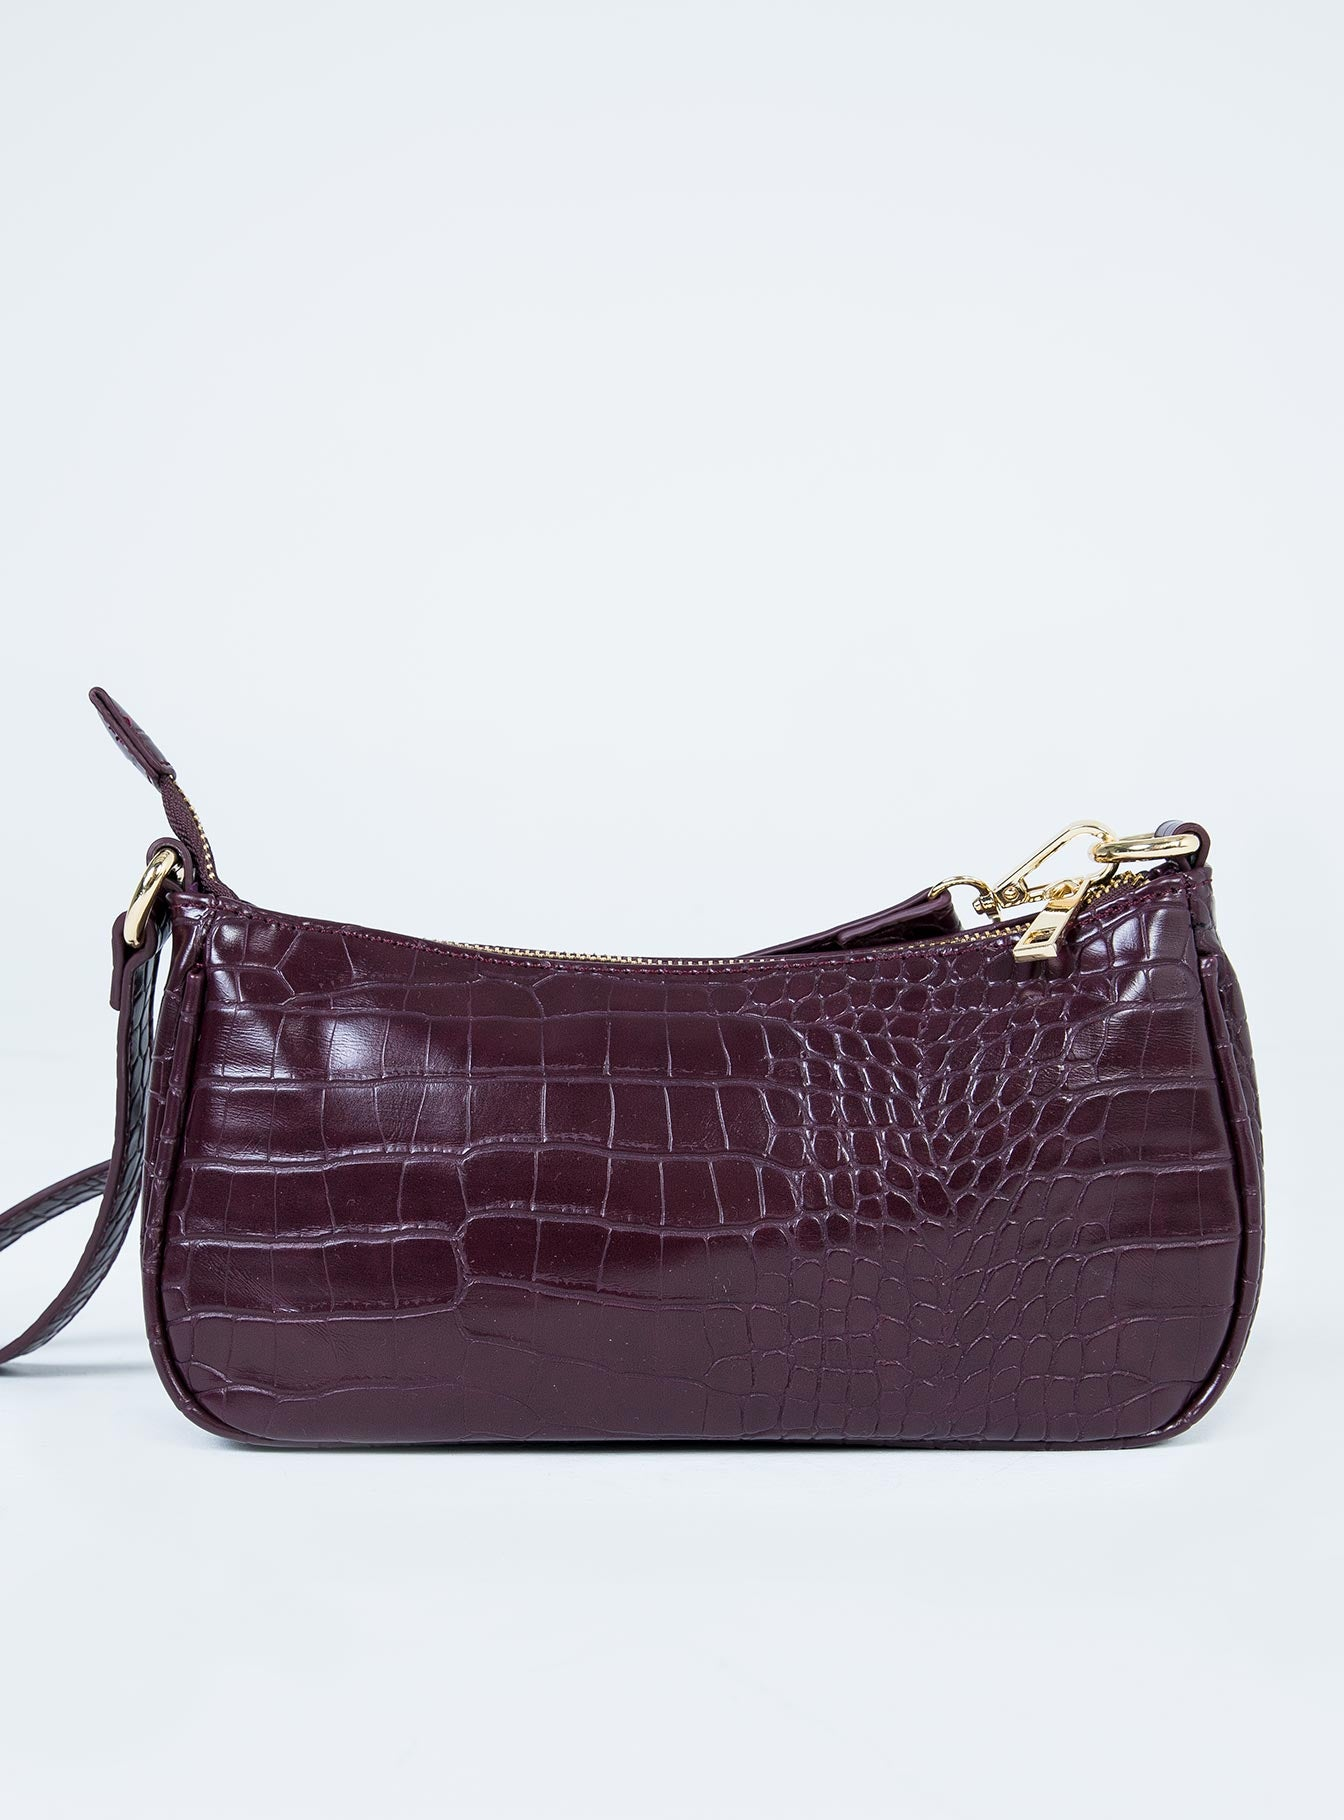 Peta & Jain Piper Bag Plum Croc